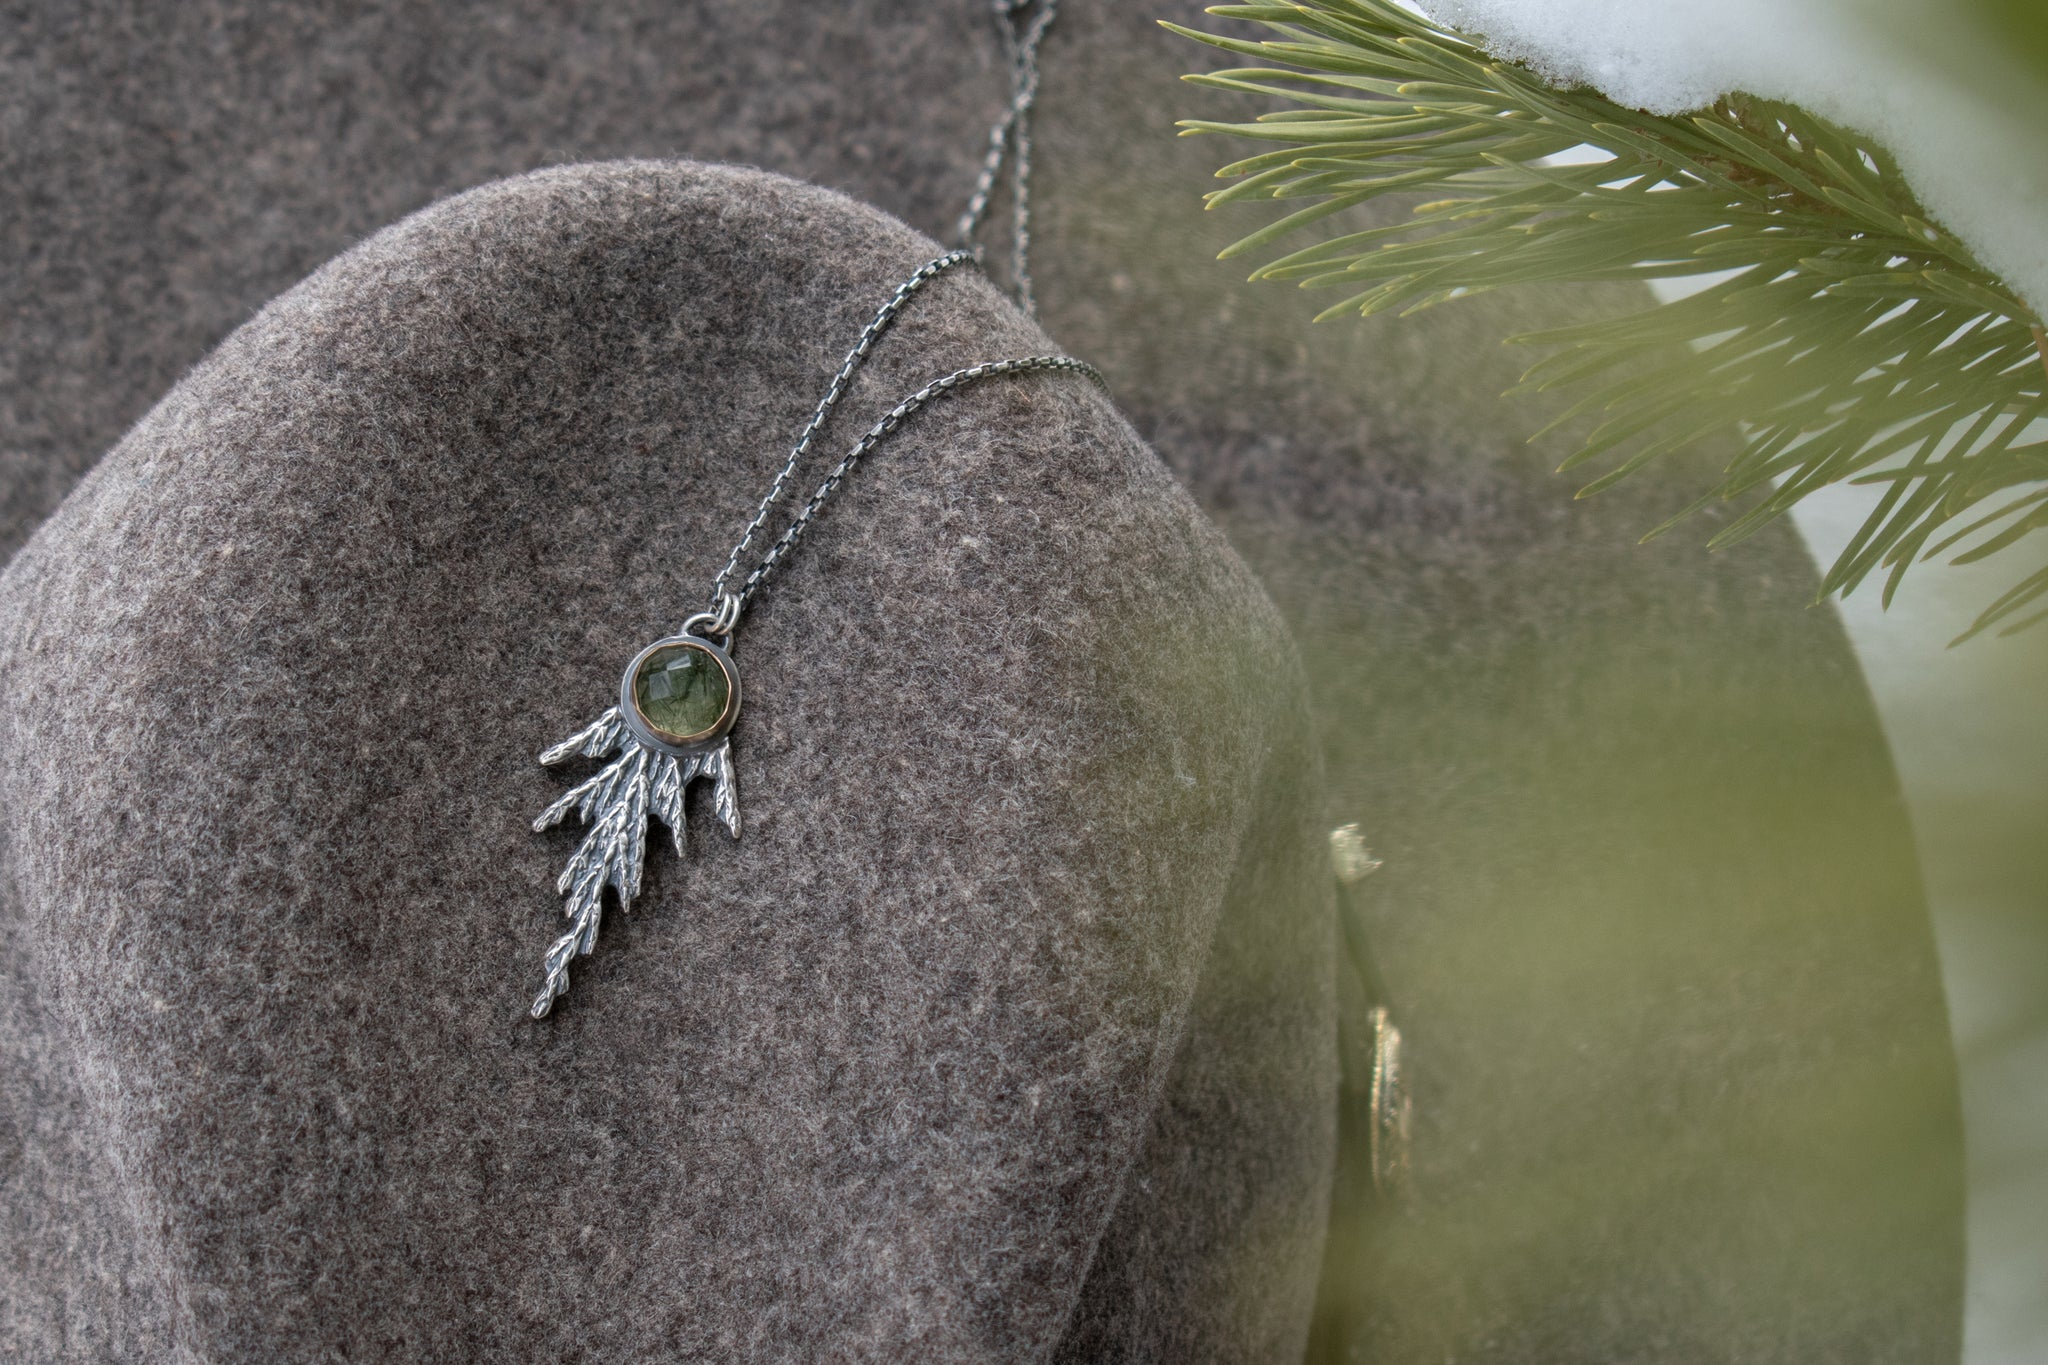 Handmade sterling silver cedar necklace with green stone set in 14k gold draped on women's hat with evergreen in foreground